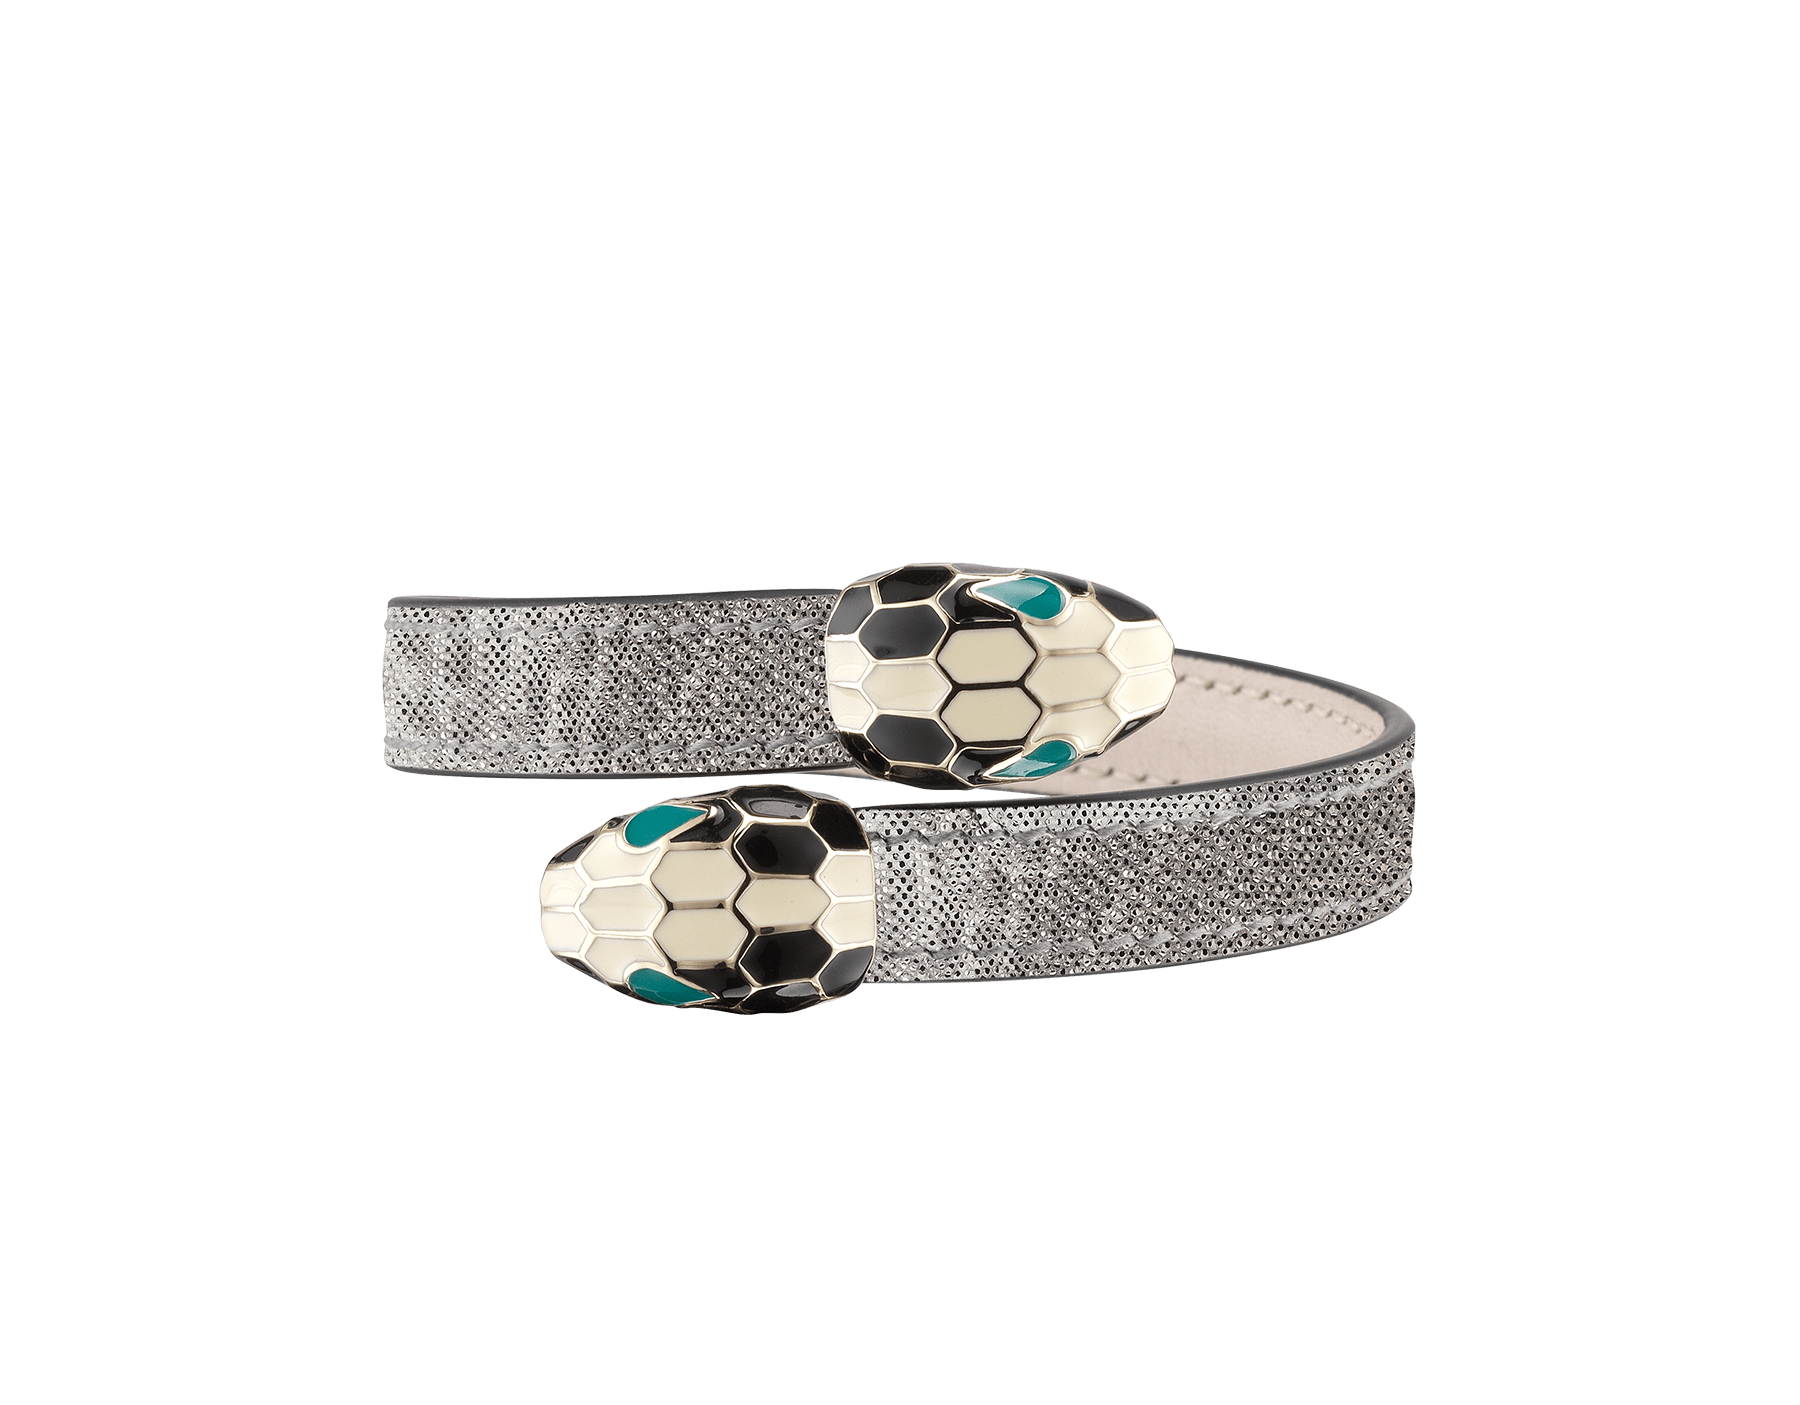 Serpenti Forever soft bangle bracelet in silver metallic karung skin, with brass light gold plated hardware. Iconic contraire snakehead décor in black and white enamel, with green enamel eyes. SerpSoftContr-MK-S image 1